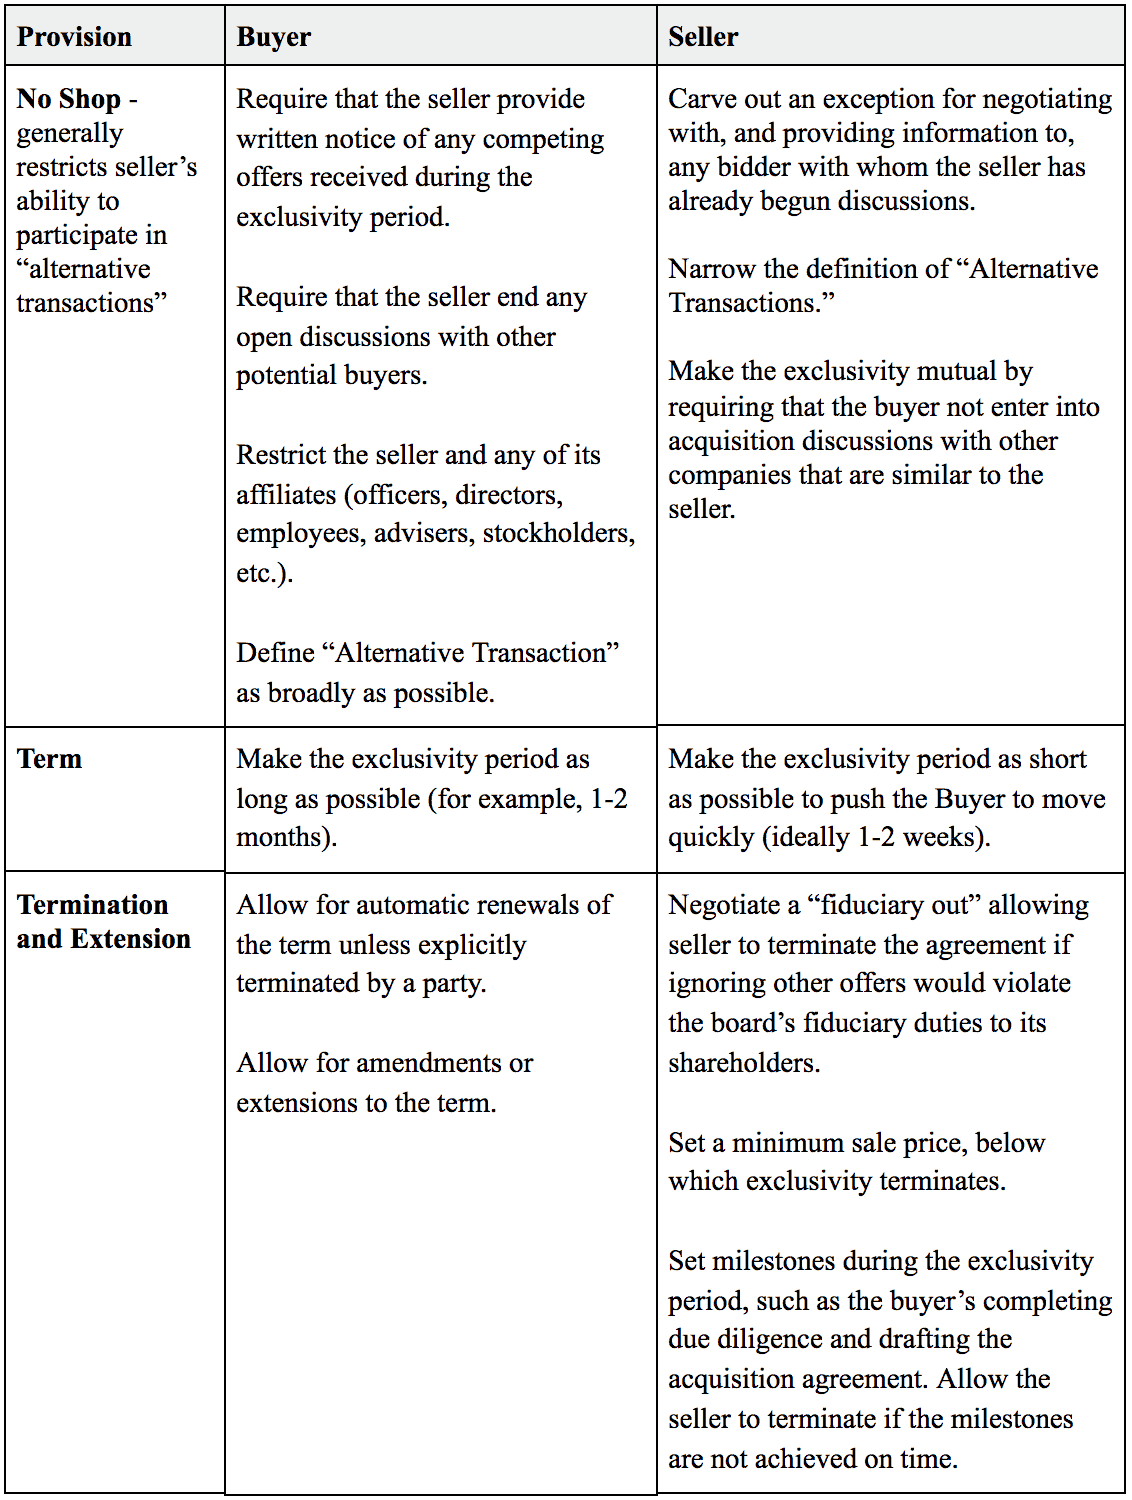 24 Awesome Image Of Negotiation And Agreement